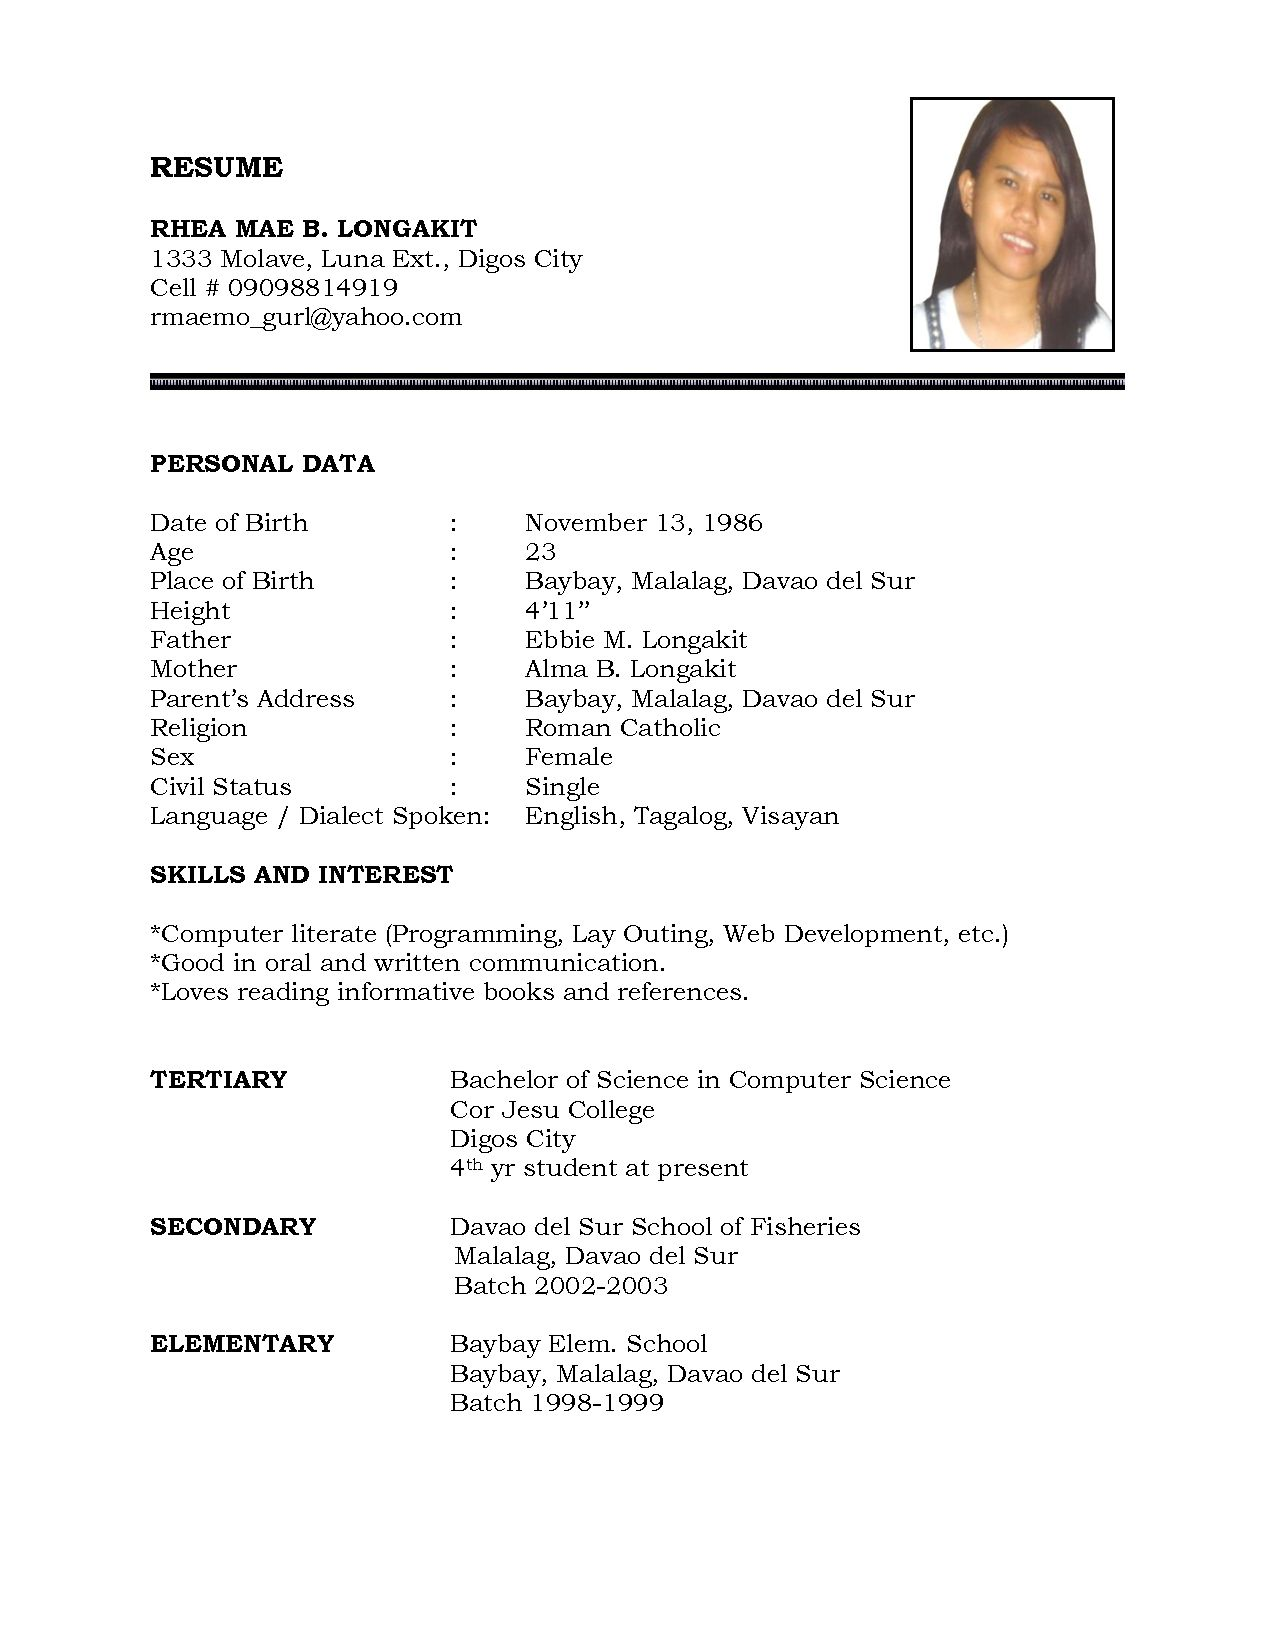 Best Resume Template To Use Resume Sample Simple De9E2A60F The Simple Format Of Resume For Job